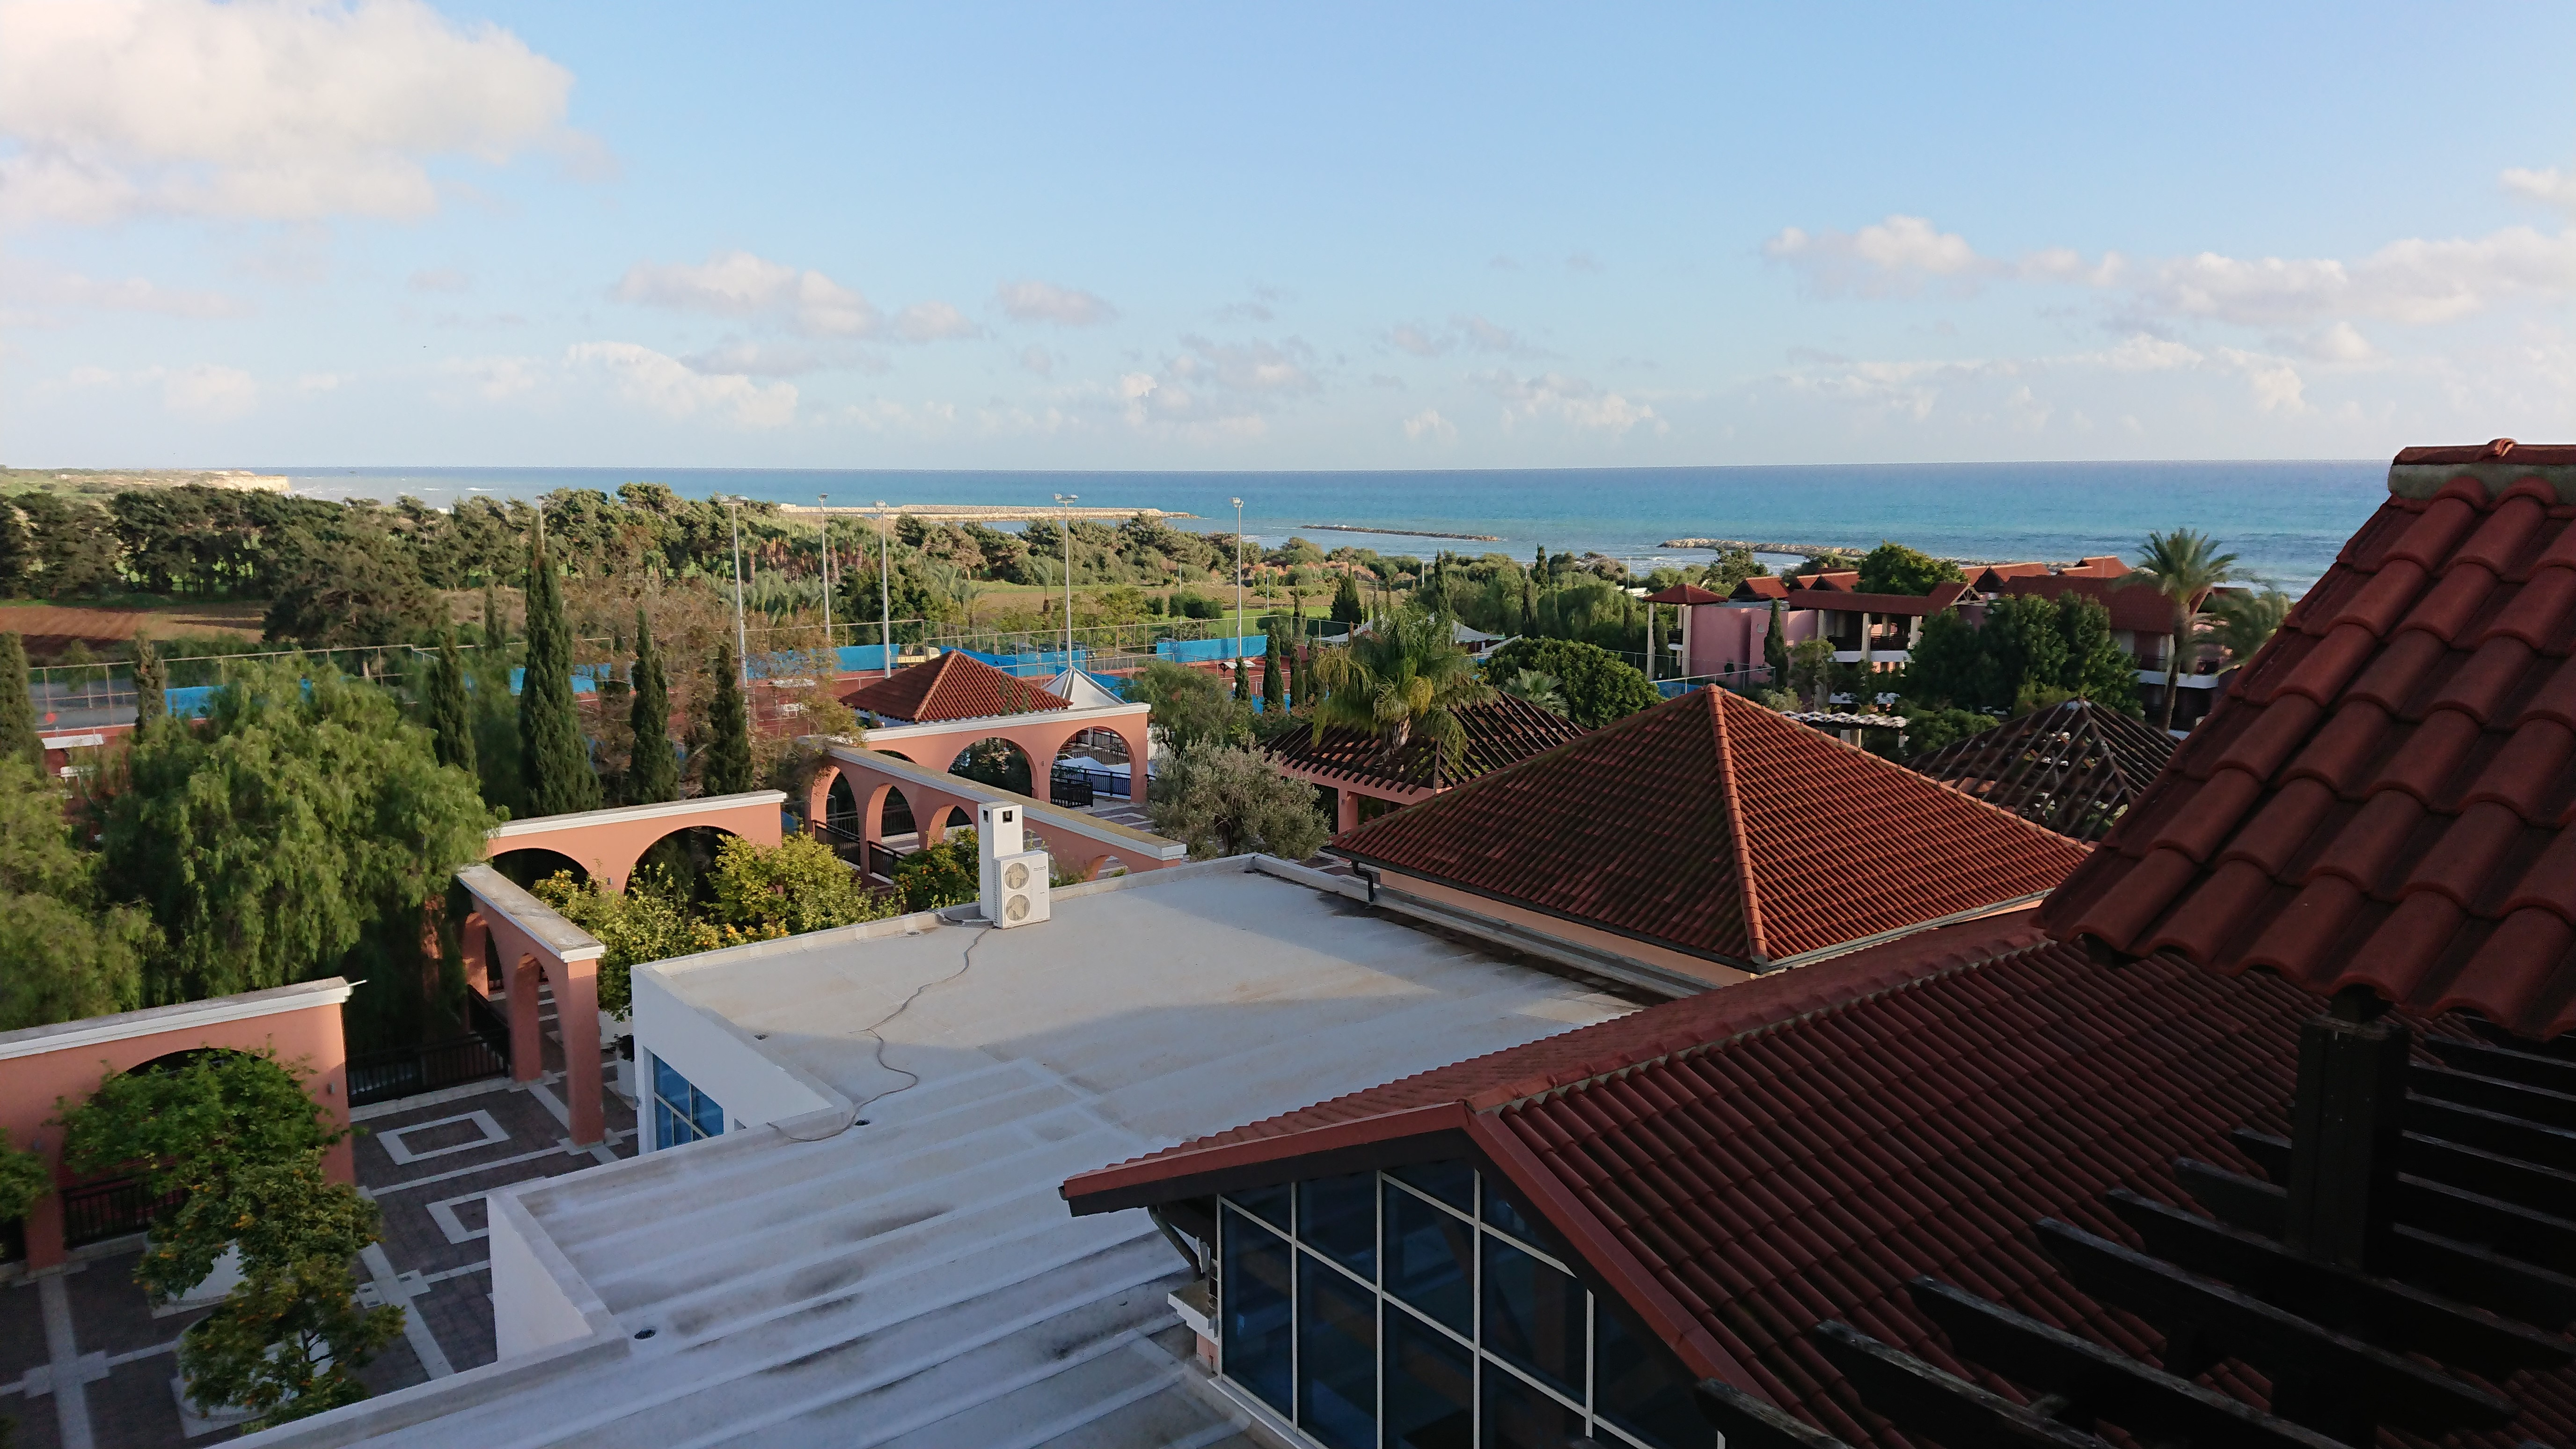 View over hotel and sea